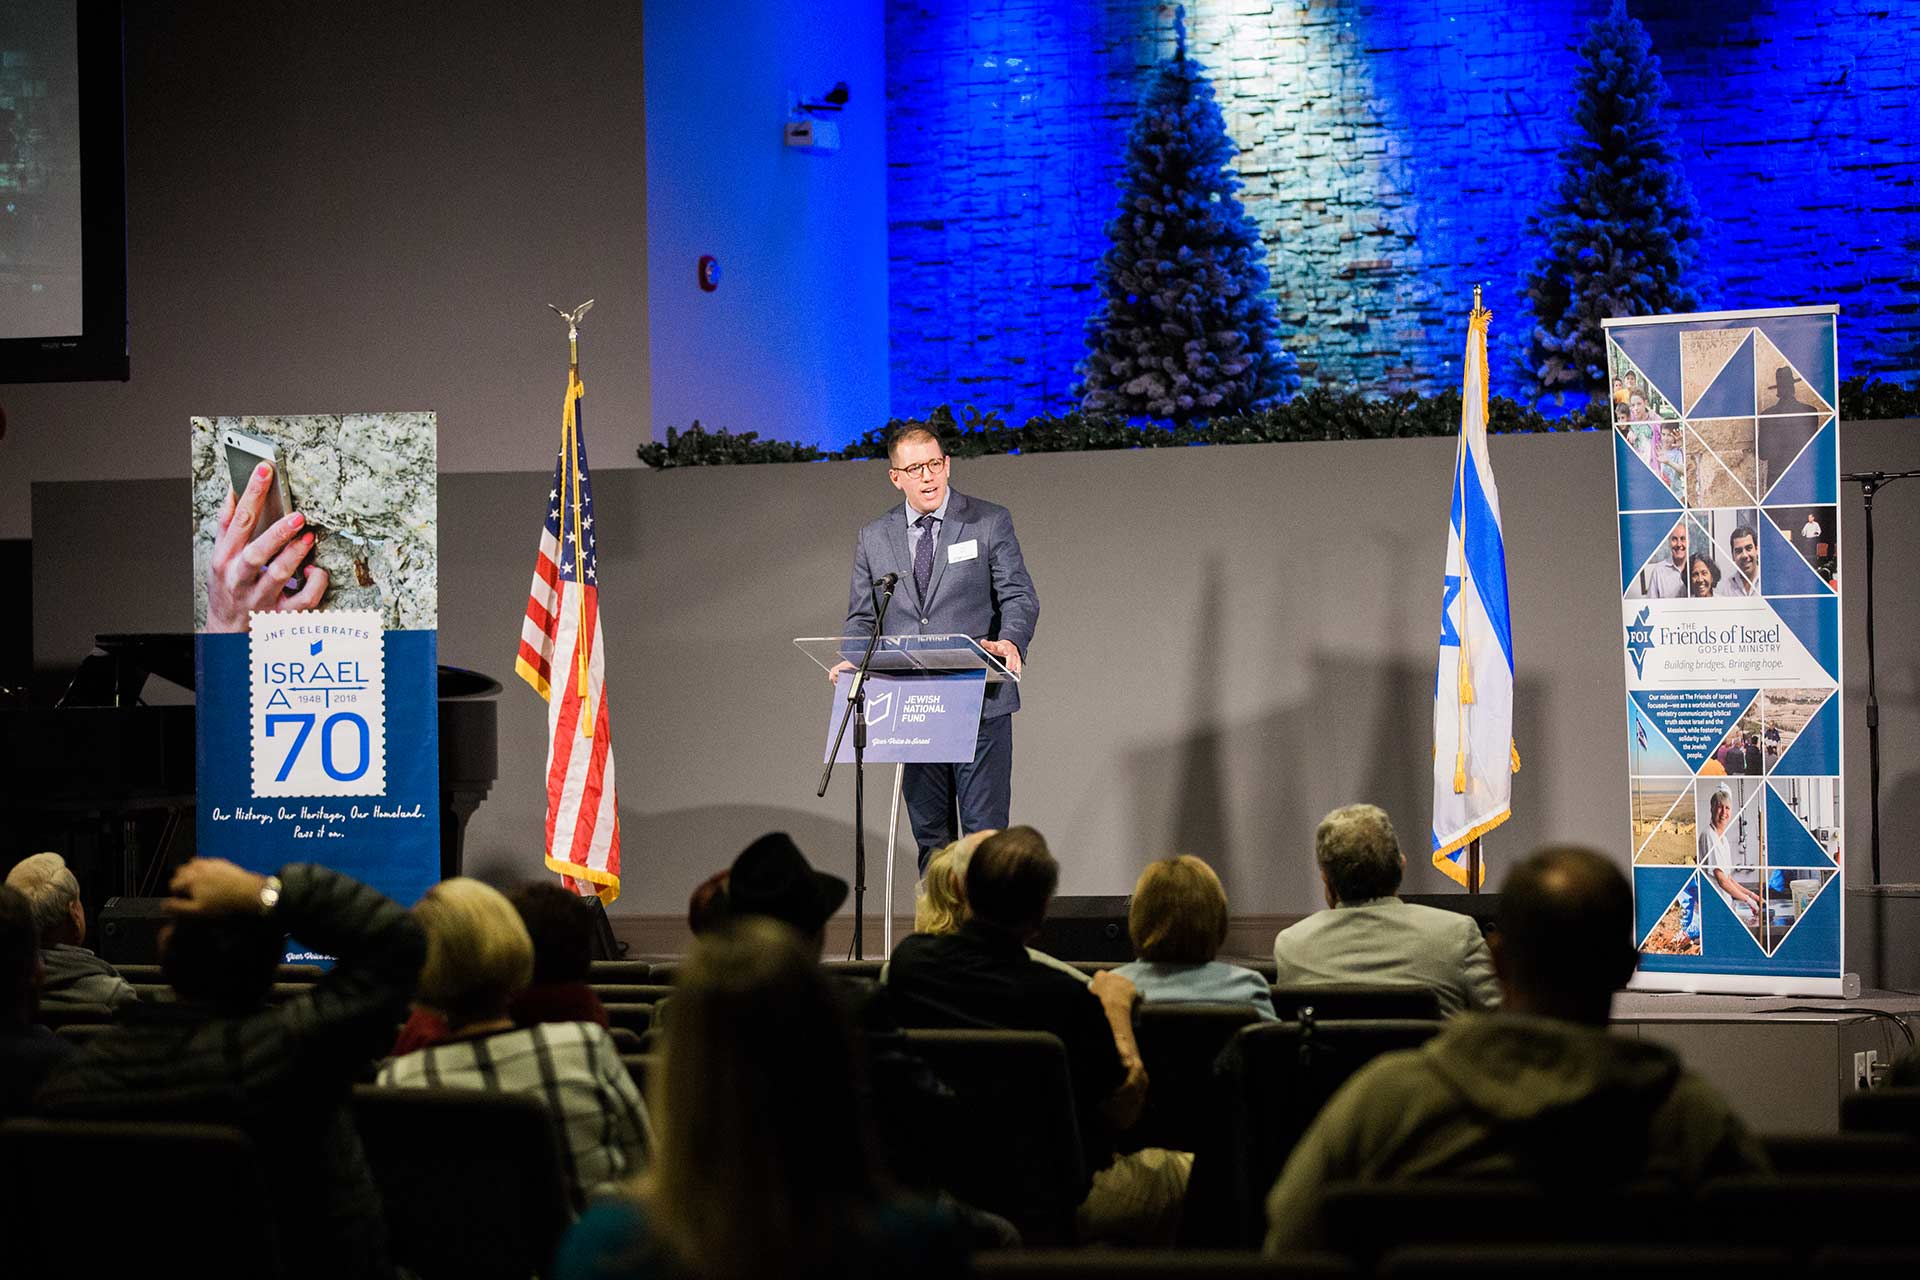 Non-Profit Event Photography: Thank God For Israel Night